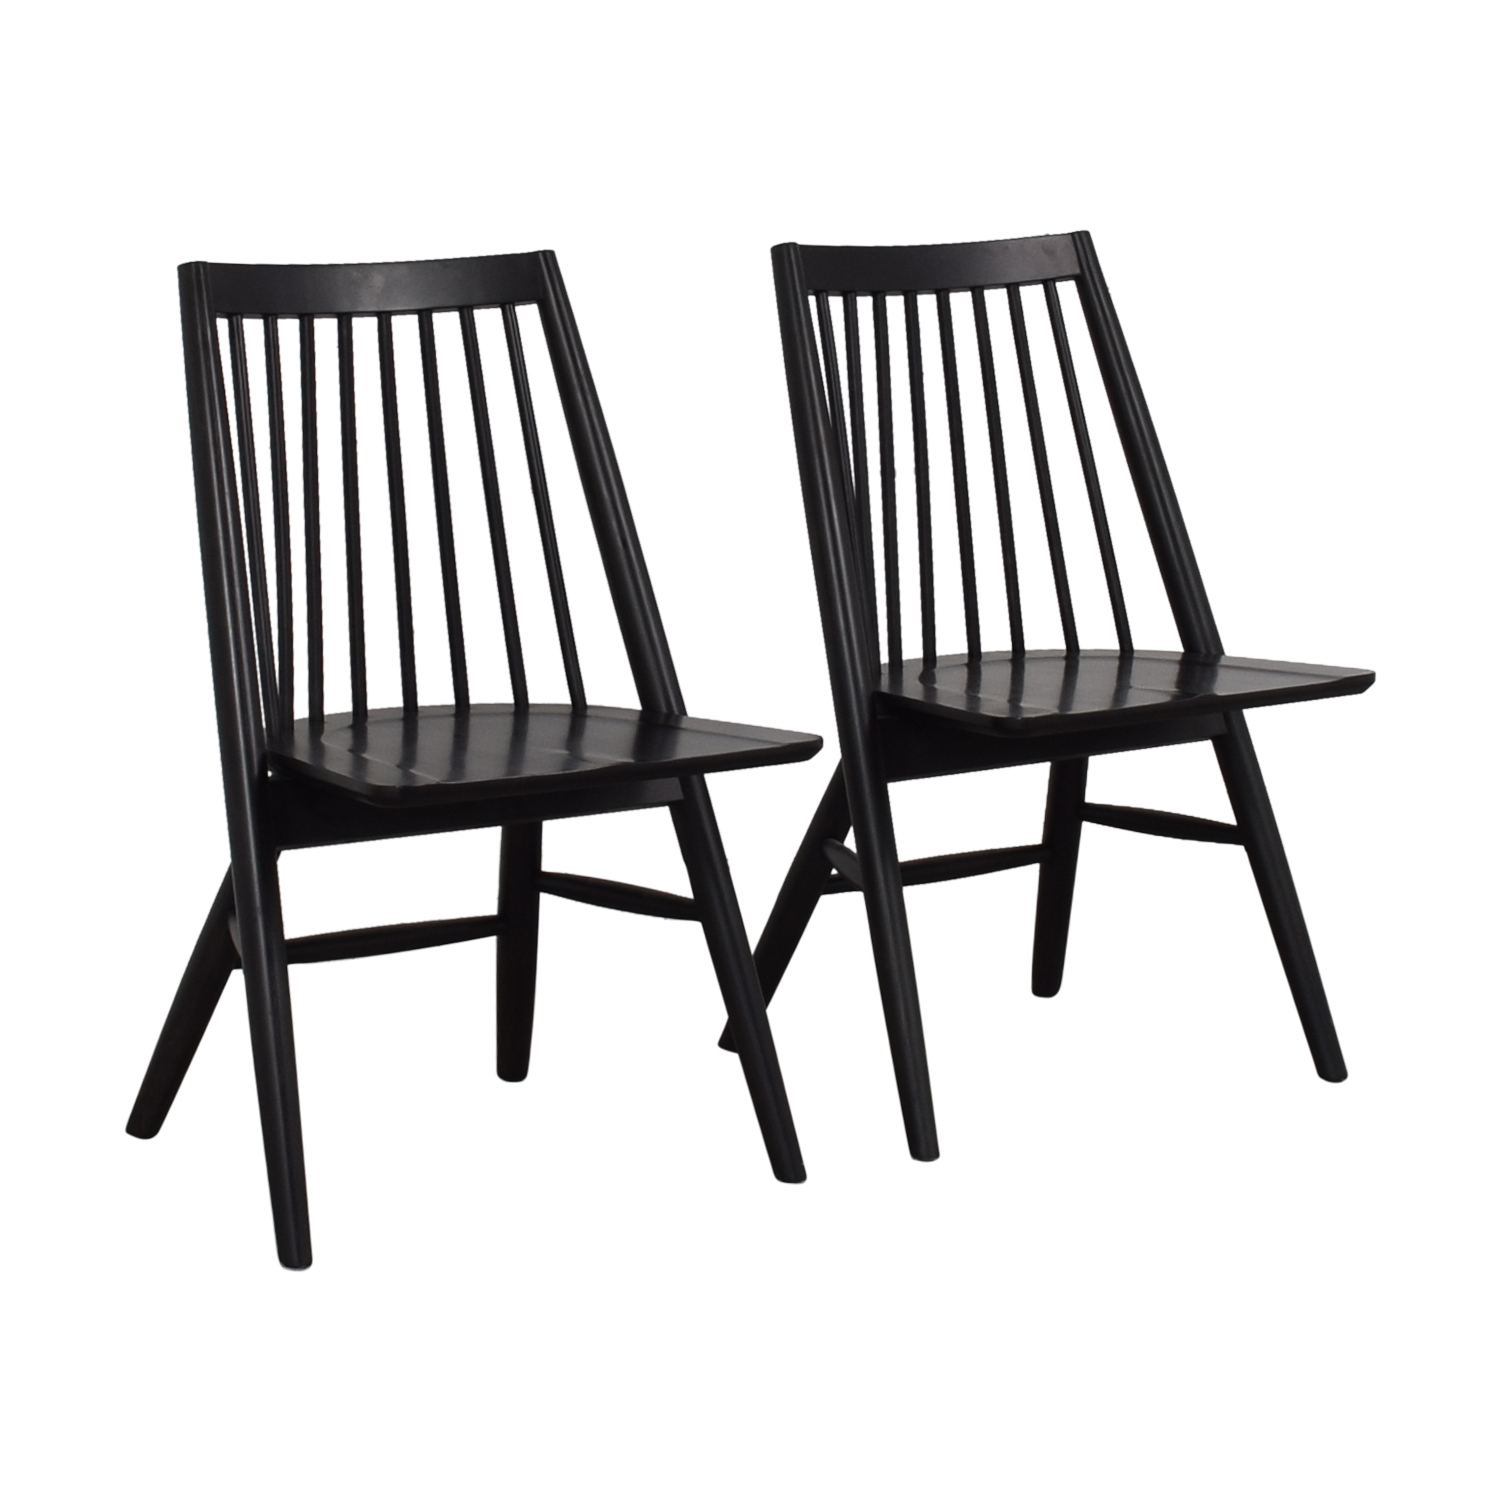 buy West Elm West Elm Black Spindle Chairs online